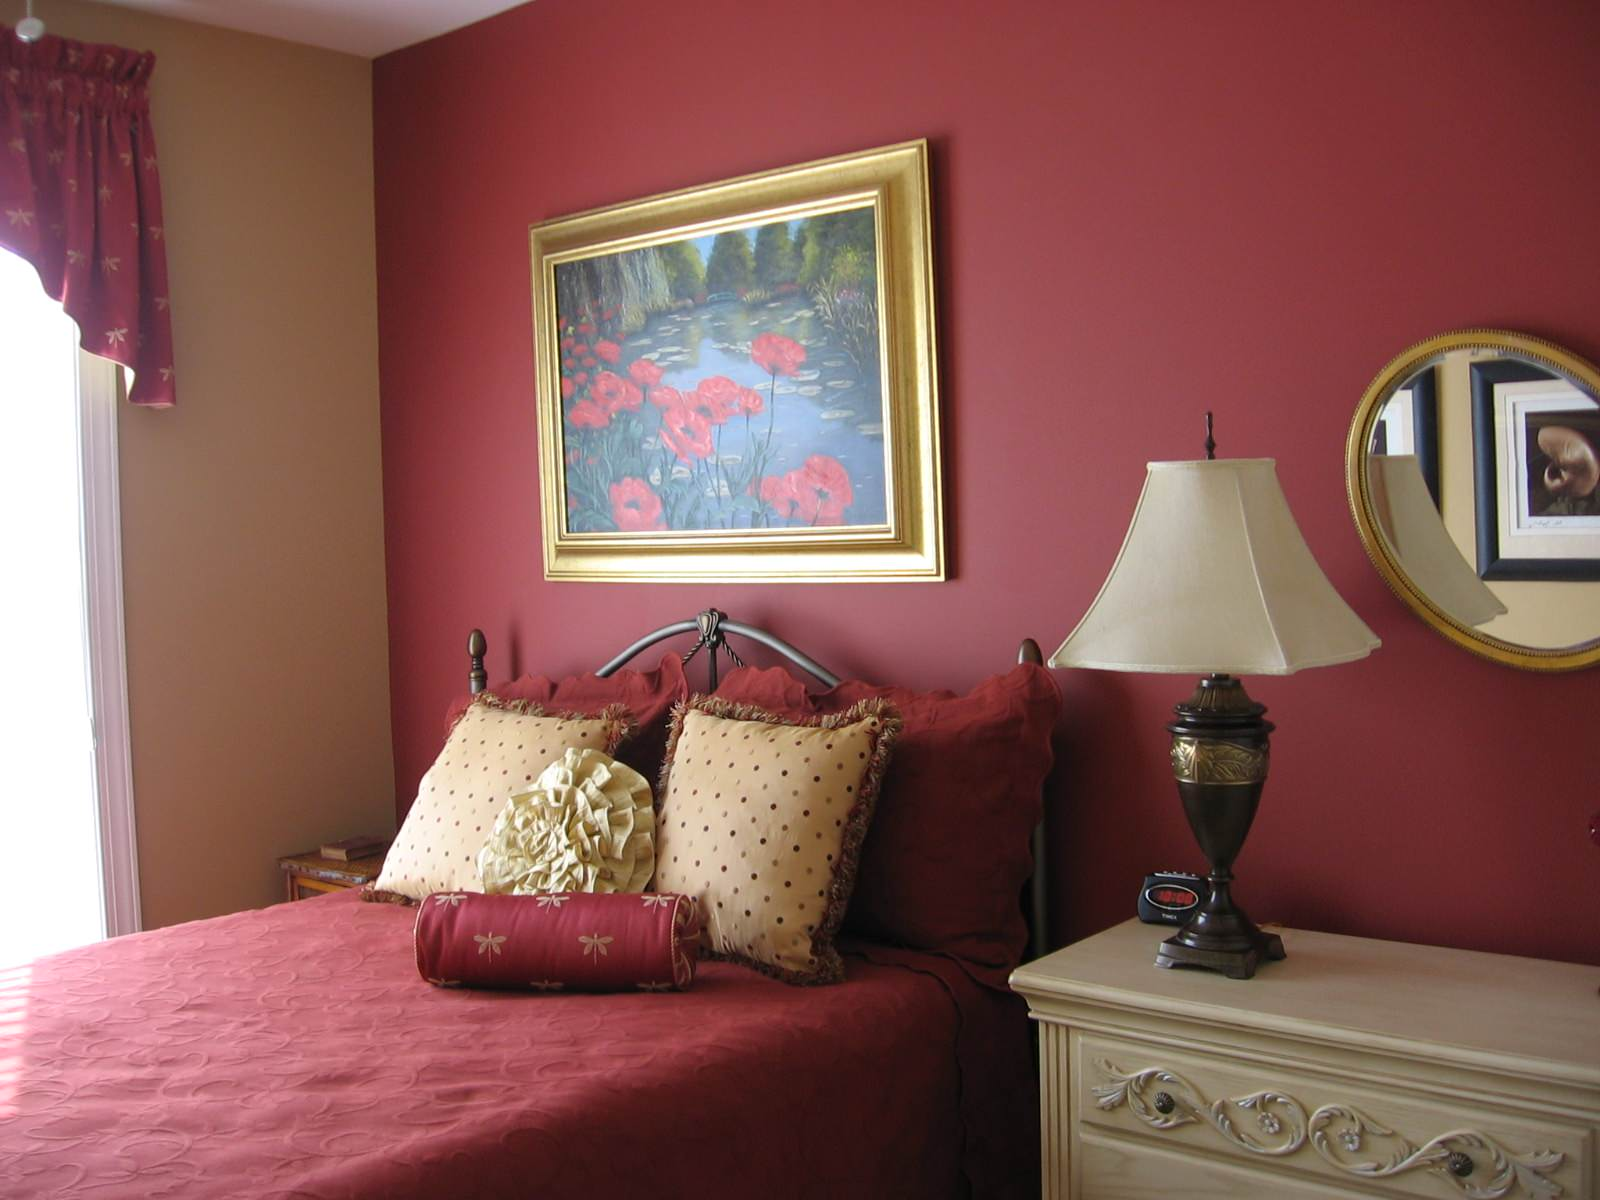 75 Beautiful Traditional Bedroom With Red Walls Pictures Ideas March 2021 Houzz